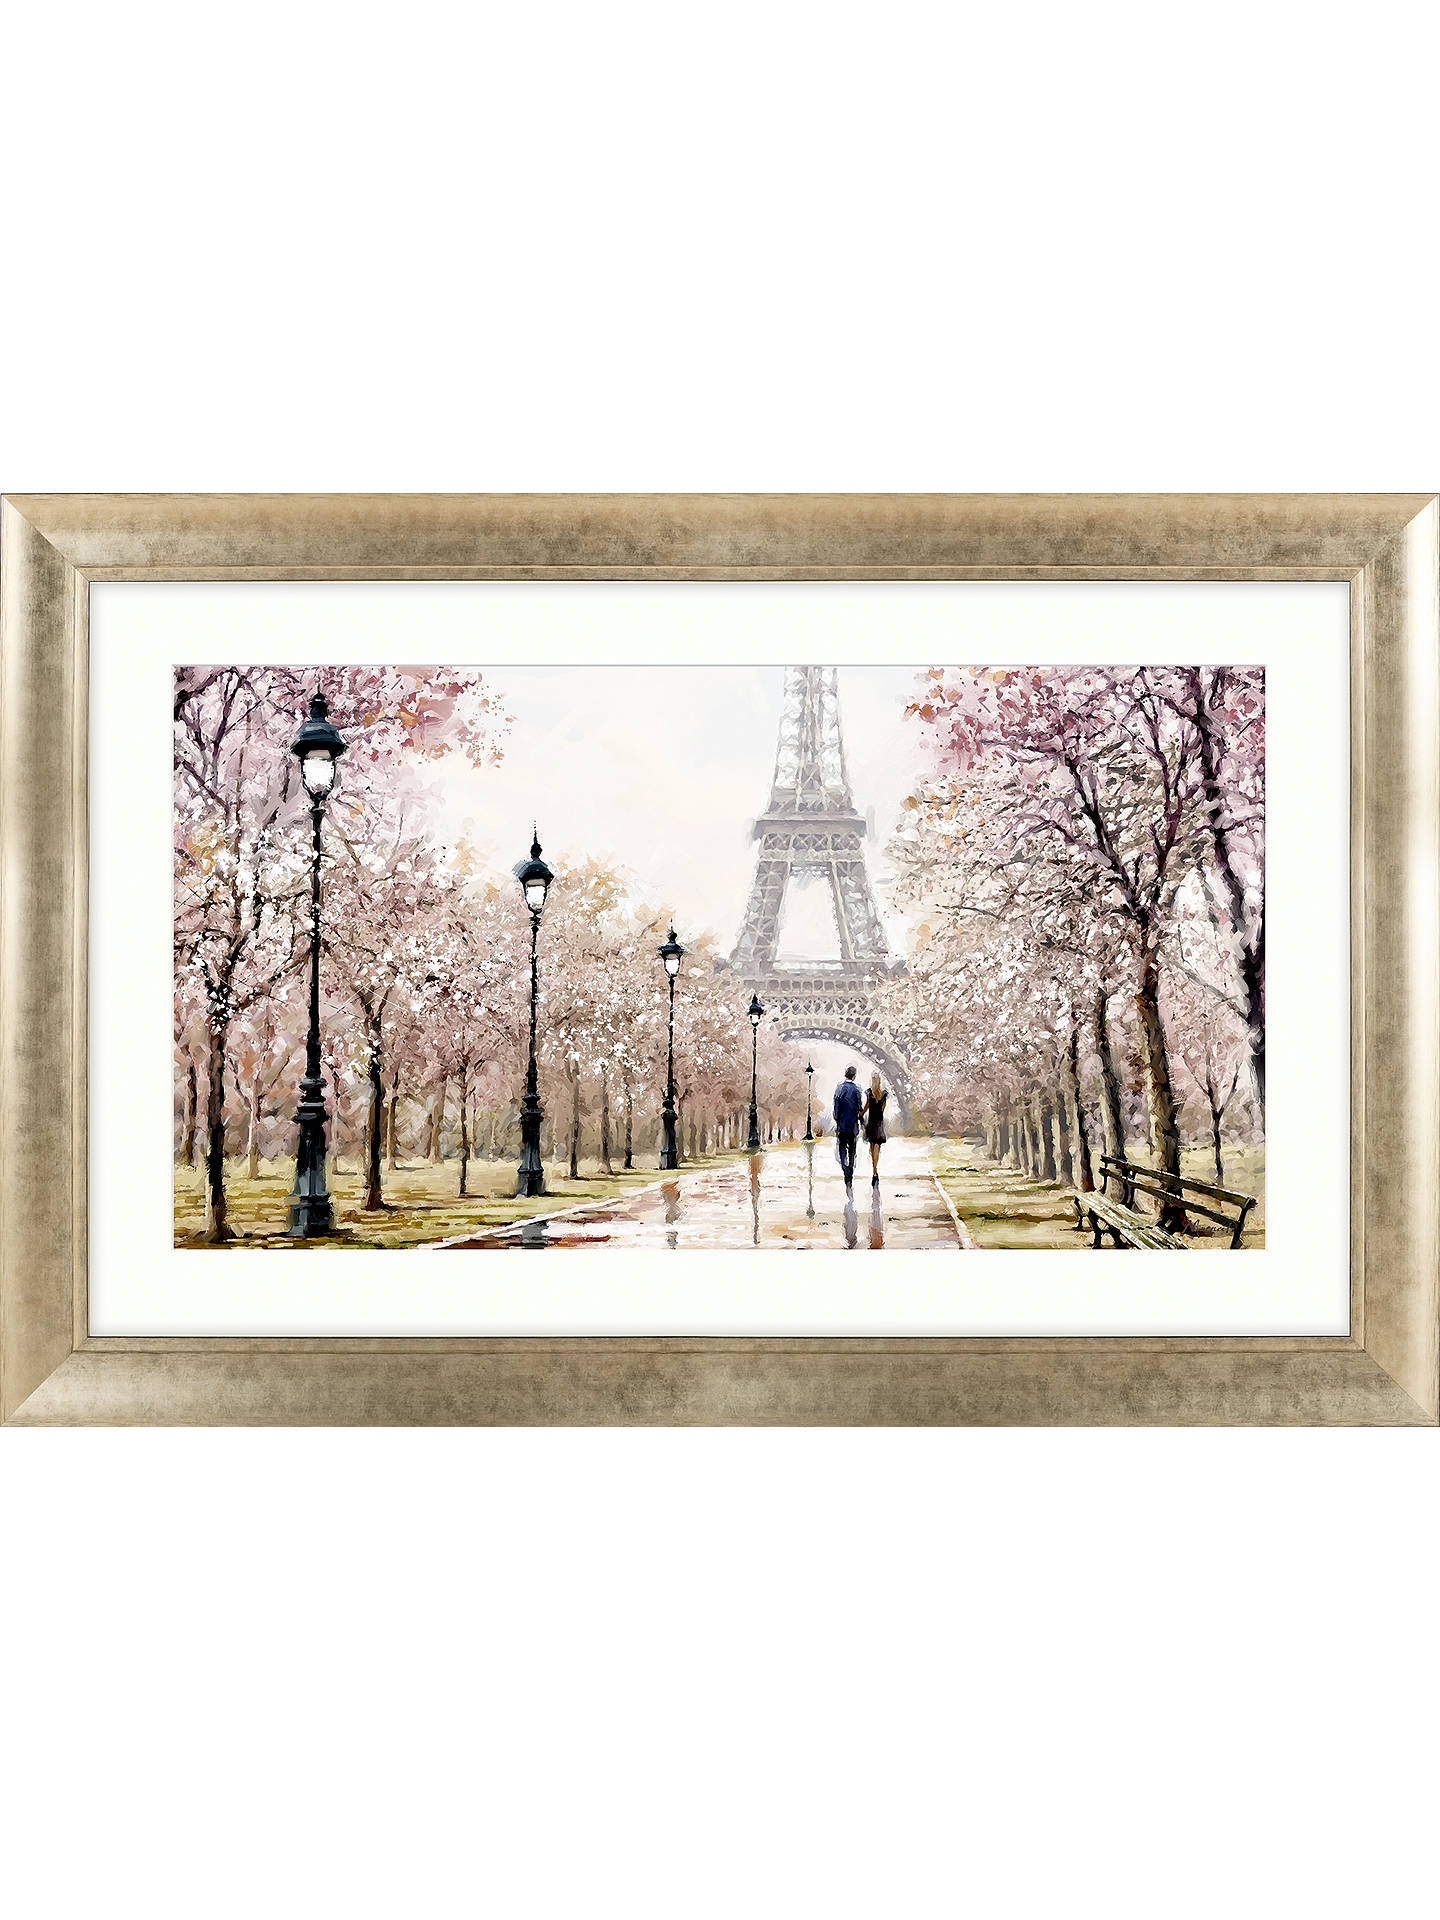 BuyRichard Macneil - Eiffel Tower Framed Print, 112 x 72cm Online at johnlewis.com